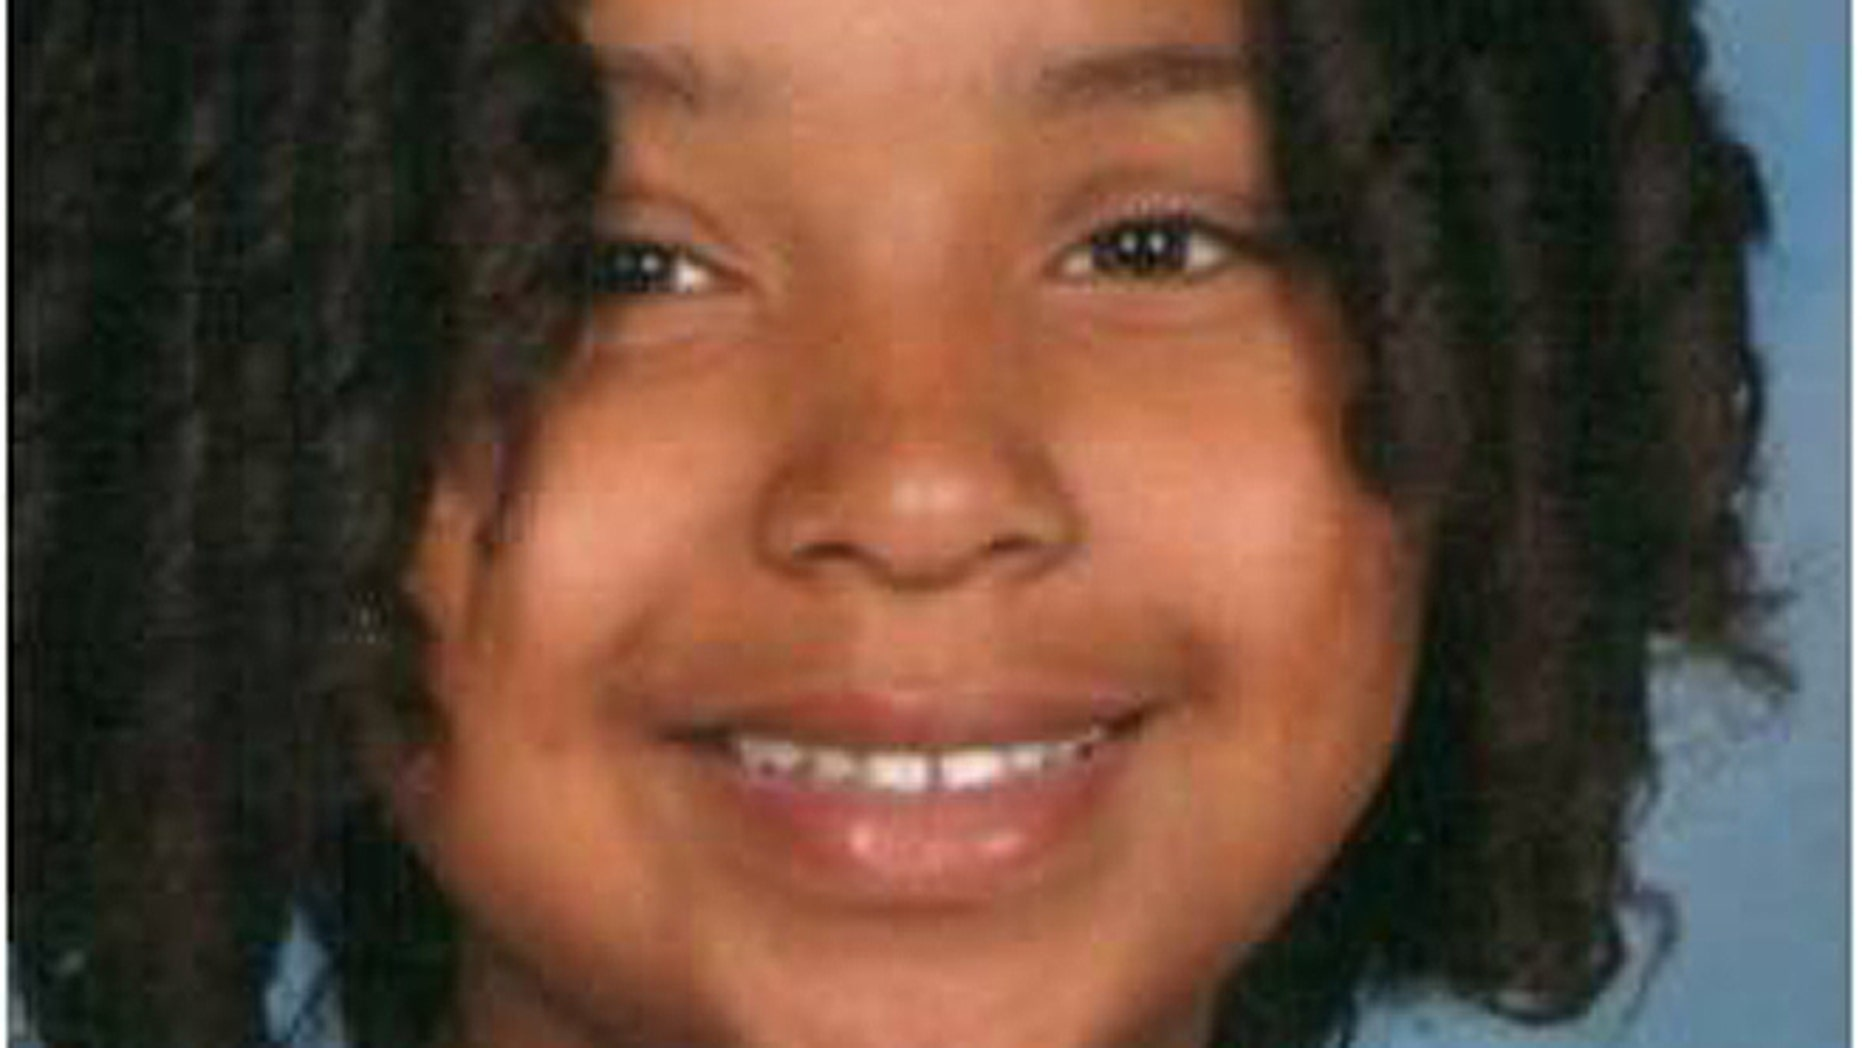 Jade Morris was last seen on Friday in Las Vegas near Martin Luther King Boulevard and Alta Drive. She was wearing blue jeans, a blue shirt and a long brown jacket, police said. (Las Vegas Metro Police)